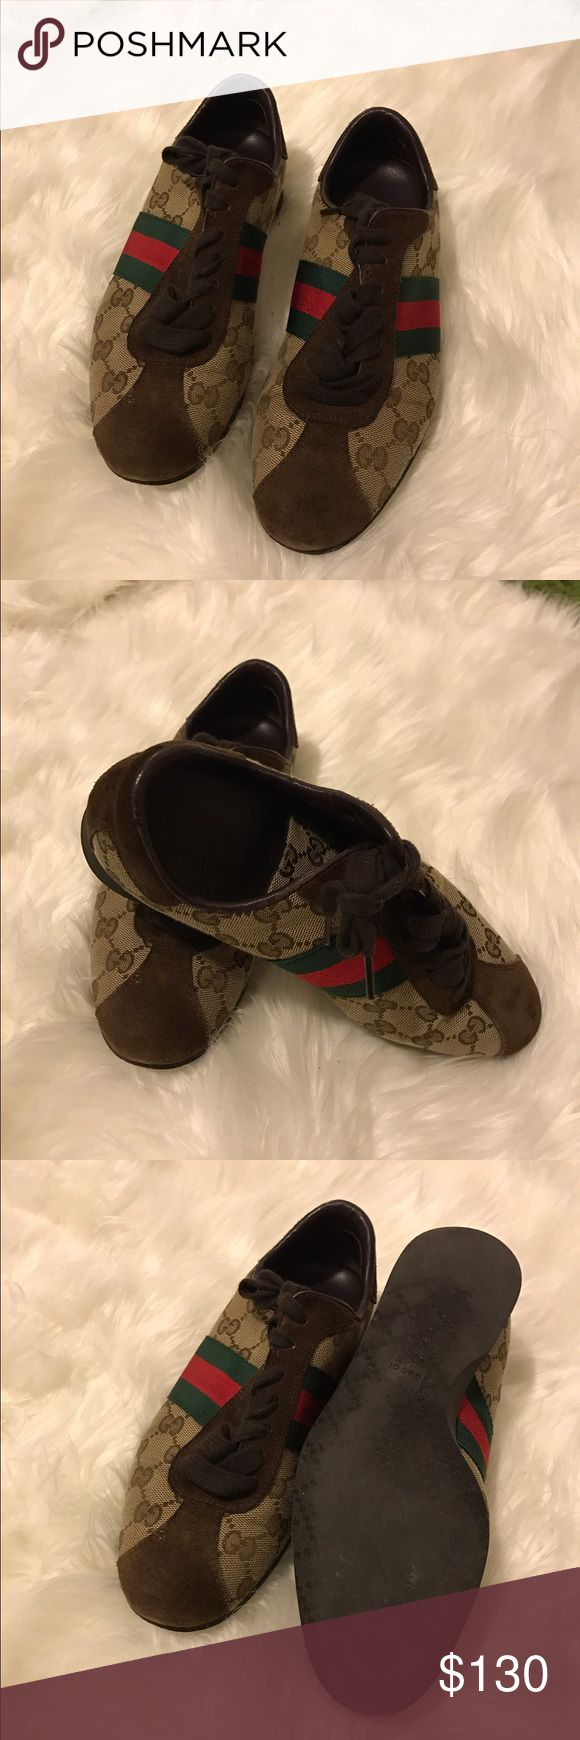 Gucci sneakers Nice comfortable sneakers with a nice color Gucci Shoes Sneakers